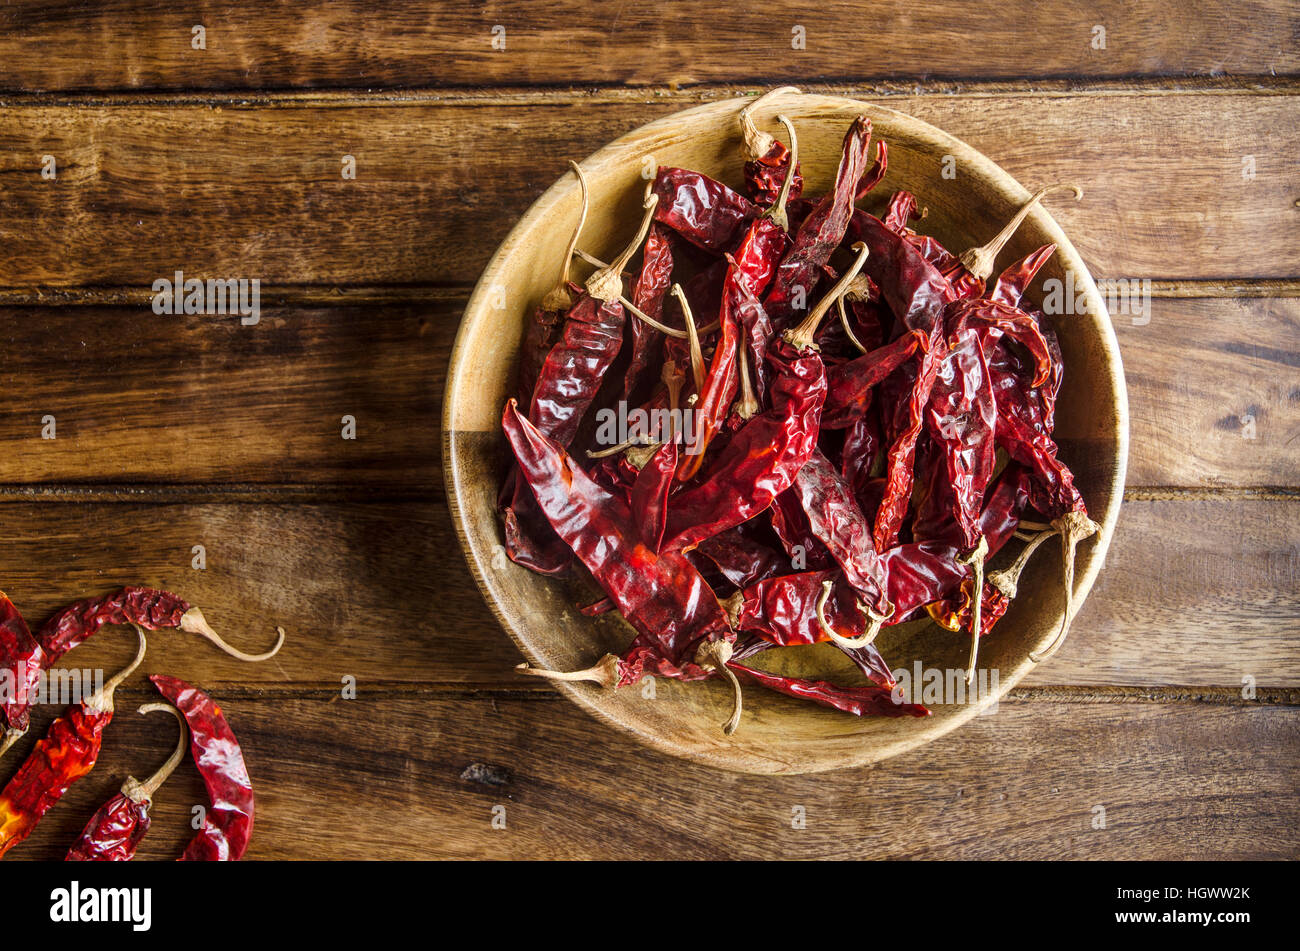 Kashmiri chillies on a wooden surface - Stock Image